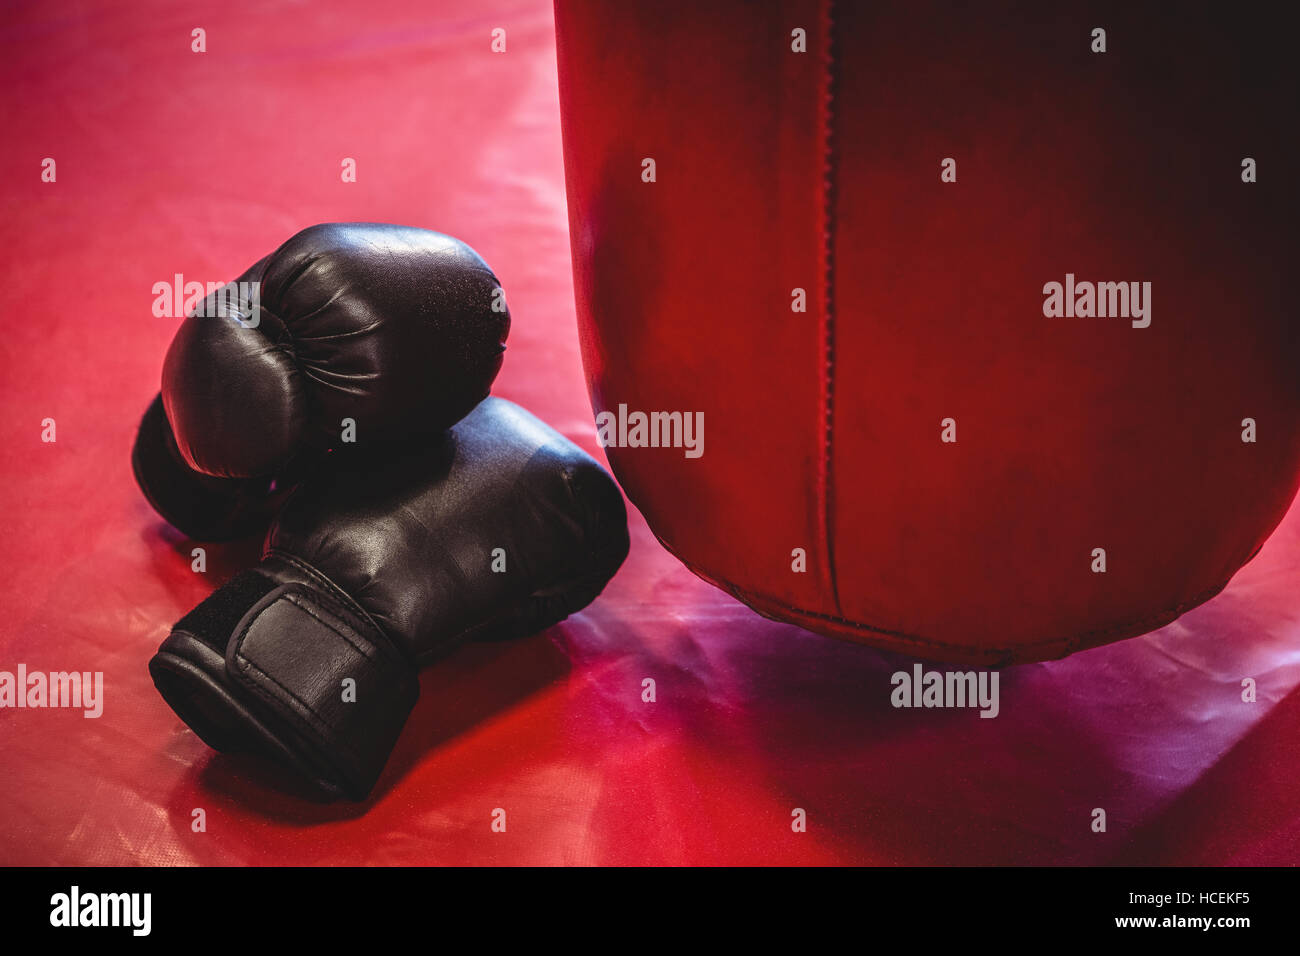 Boxing gloves and punching bag on red surface - Stock Image